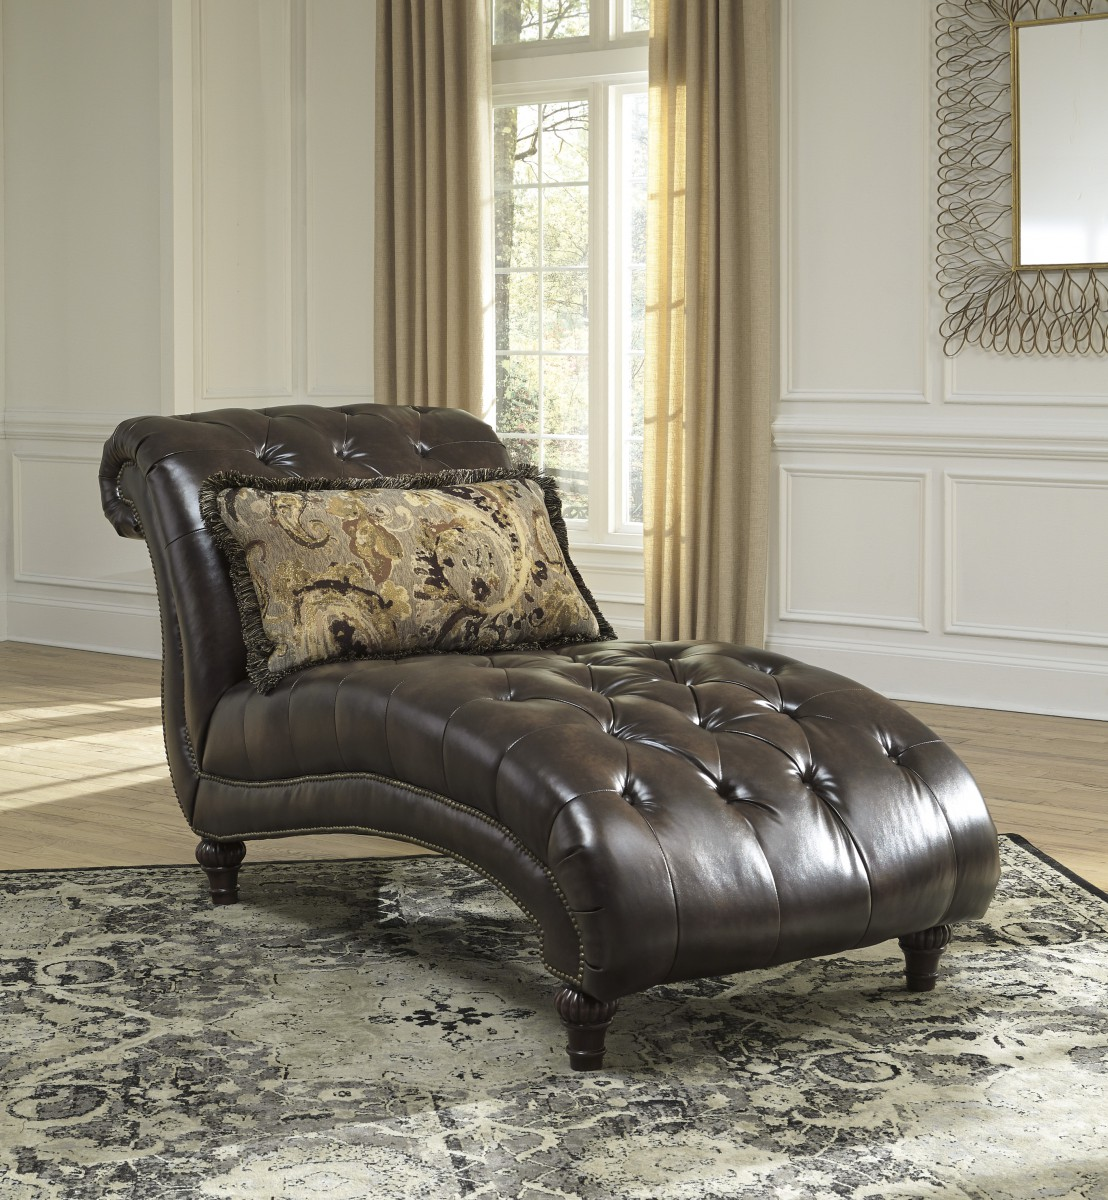 5560215 signature by ashley winnsboro durablend chaise for Ashley durablend chaise